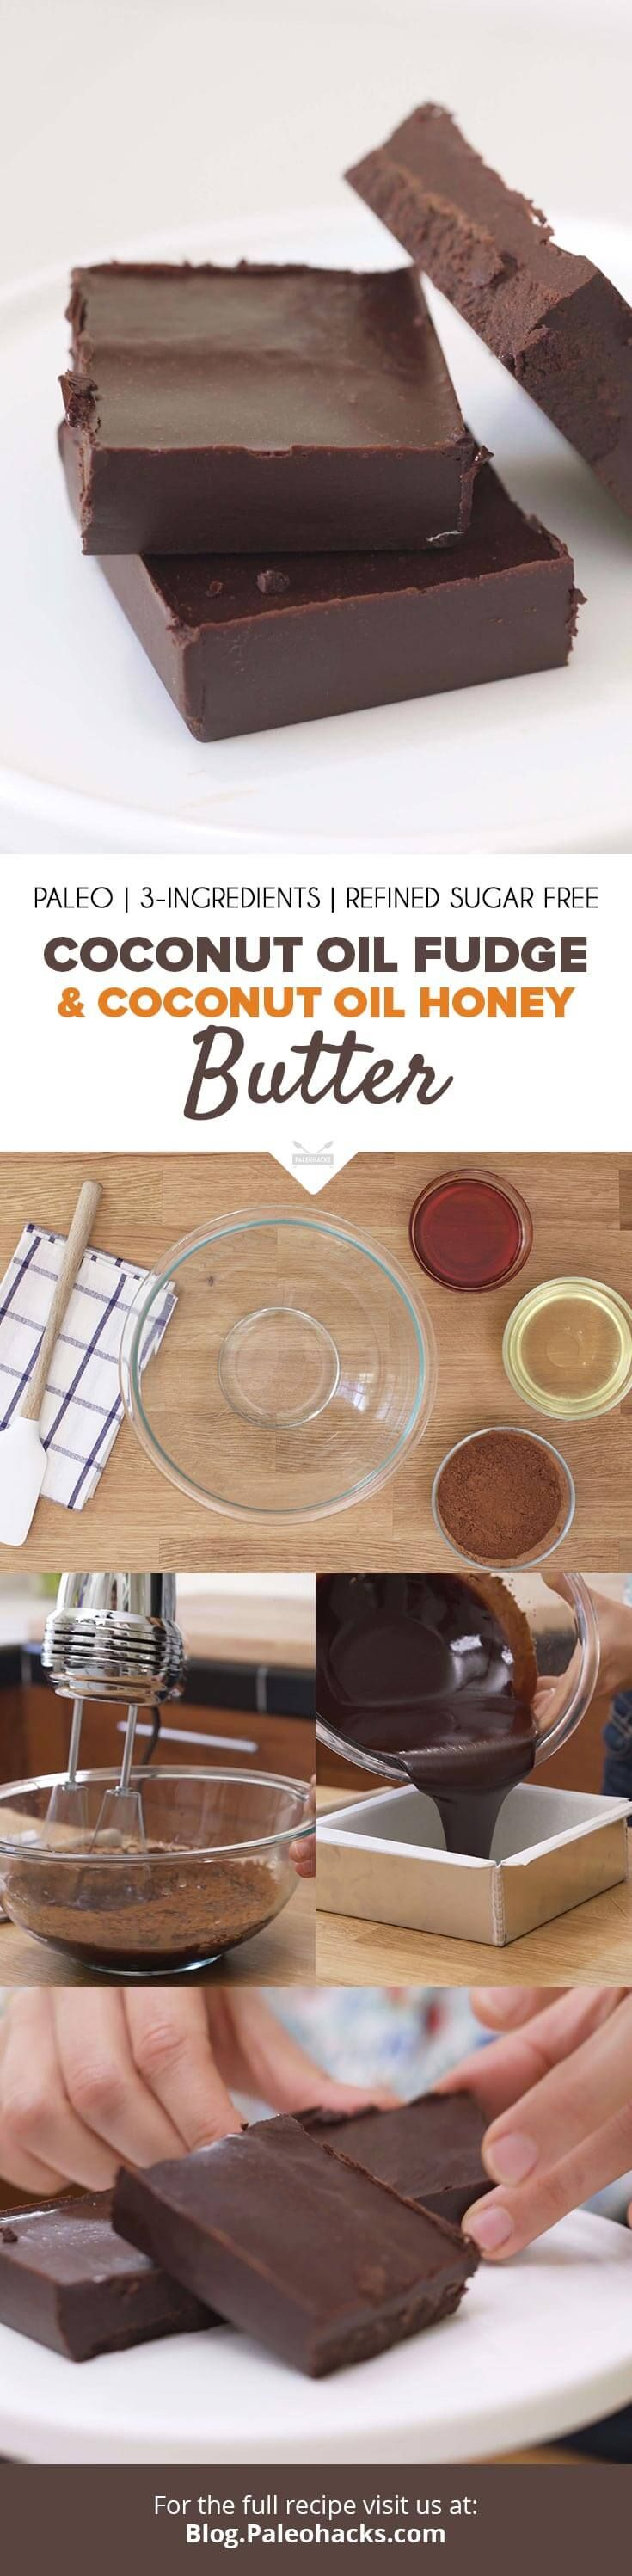 Looking for ways to add coconut oil to your diet? Fear no more!  We've got the ultimate two recipes to satisfy any sweet tooth cravings:  Coconut Oil Fudge and Coconut Oil Honey Butter. Get both recipes here: http://paleo.co/Cocooilfudge